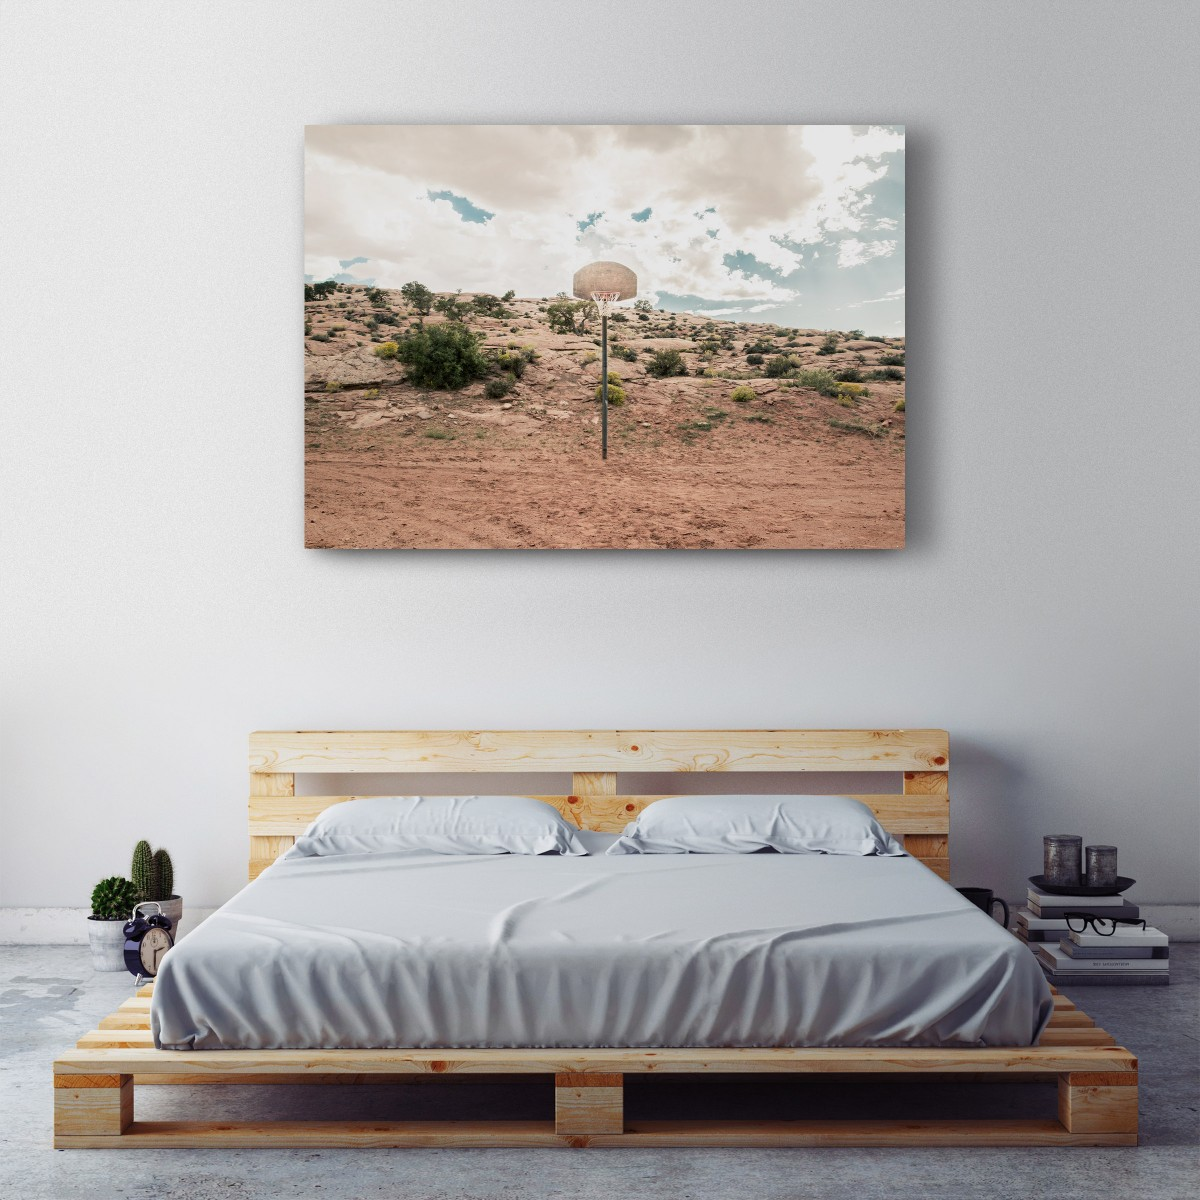 JOE MANIA / Modern Artprint Poster / Streetball Courts 1 (Arizona, USA) DIN A4 - A0